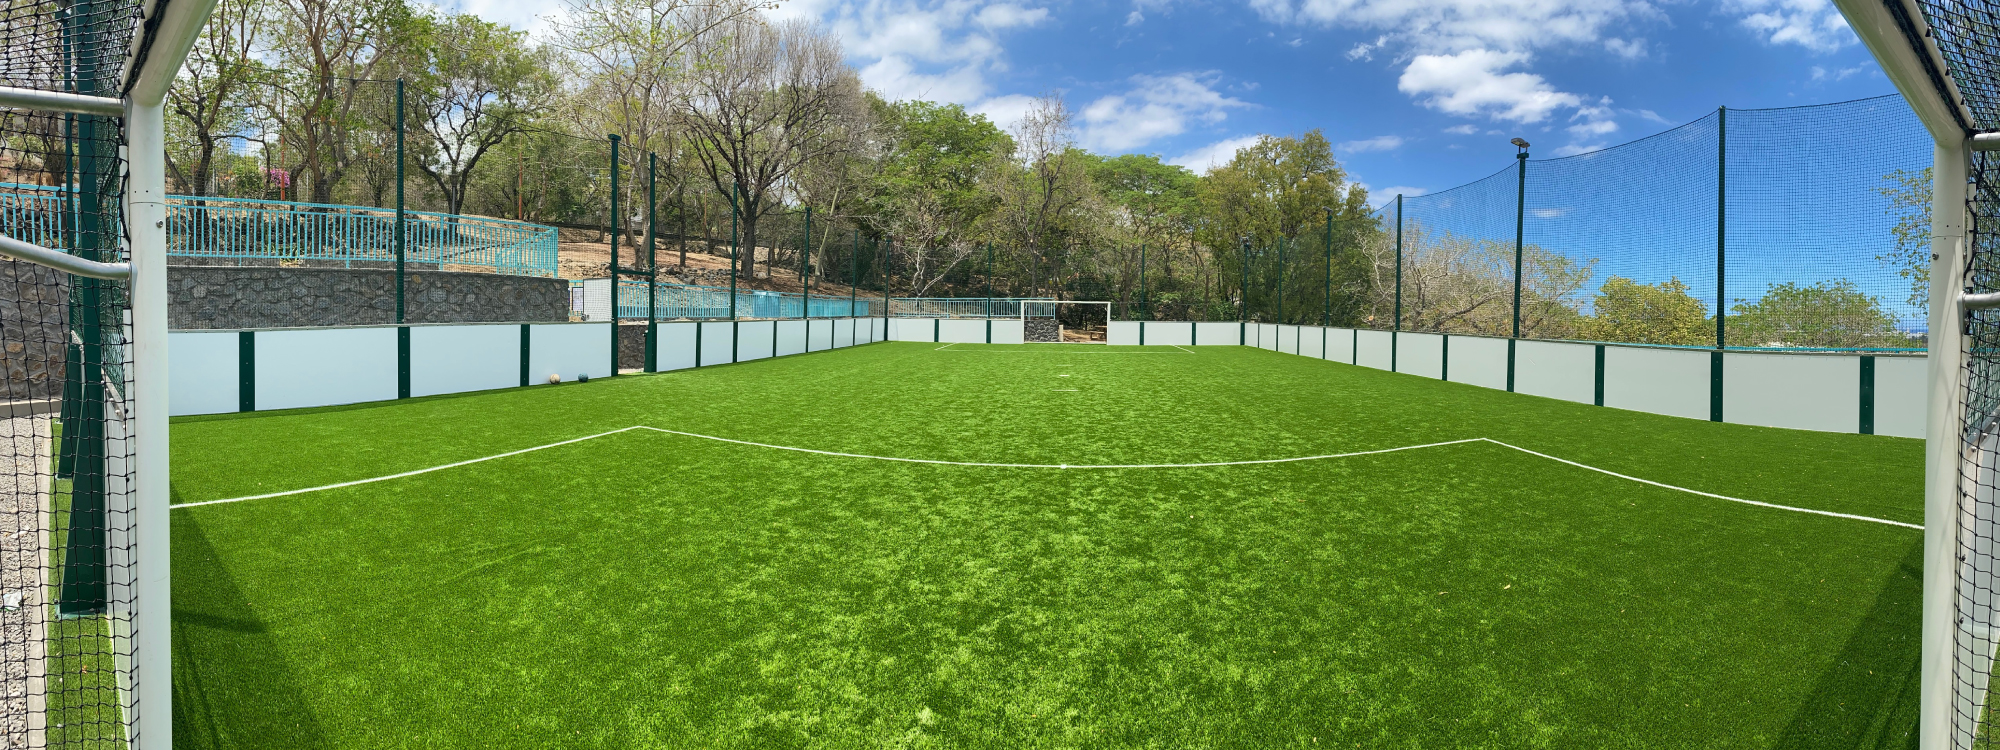 Outdoor football fields for 5-a-side football practice